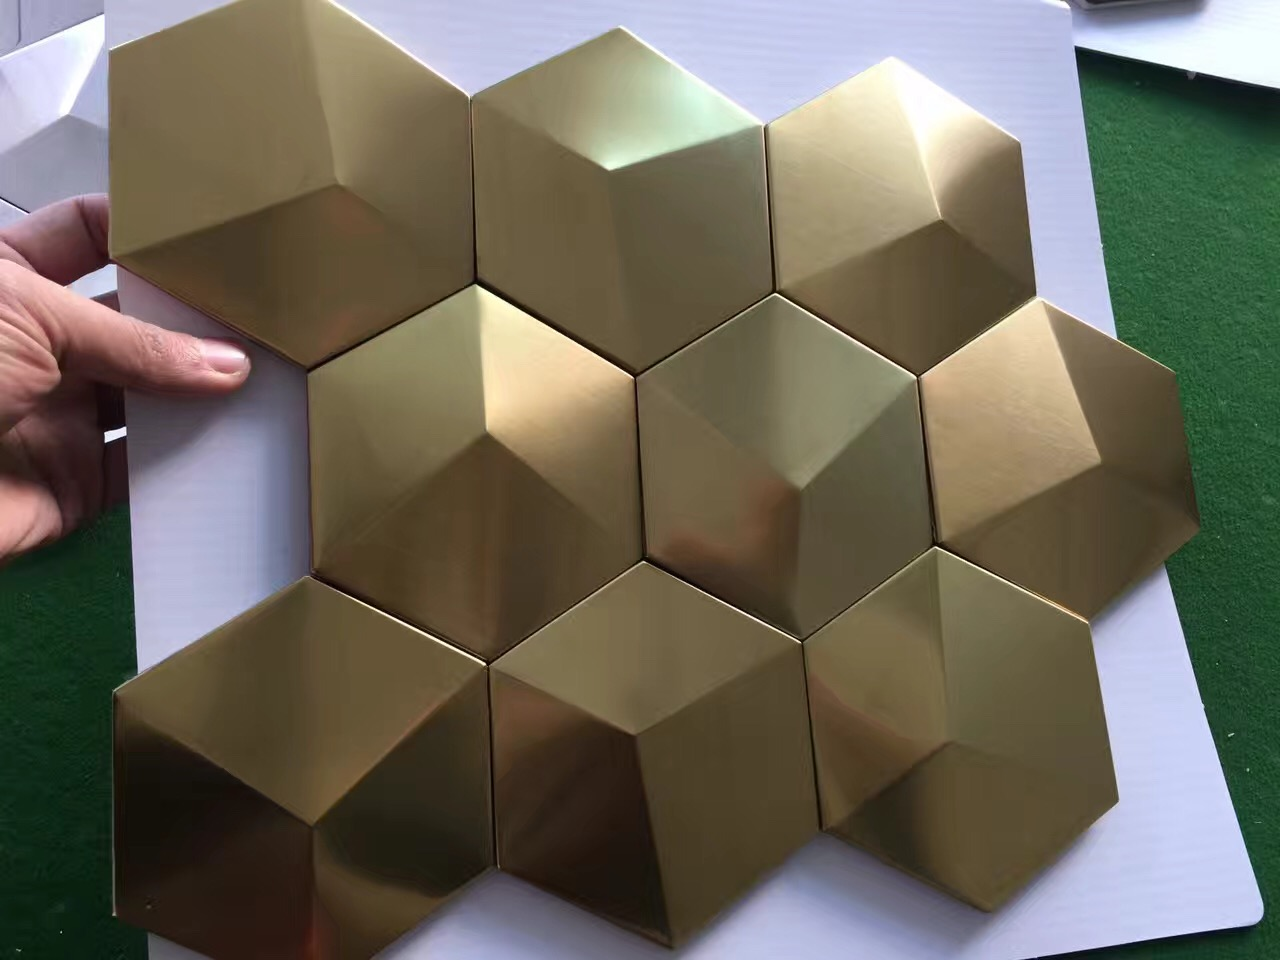 Gold Metal Mosaic Tile Stainless Steel Tile pyramid